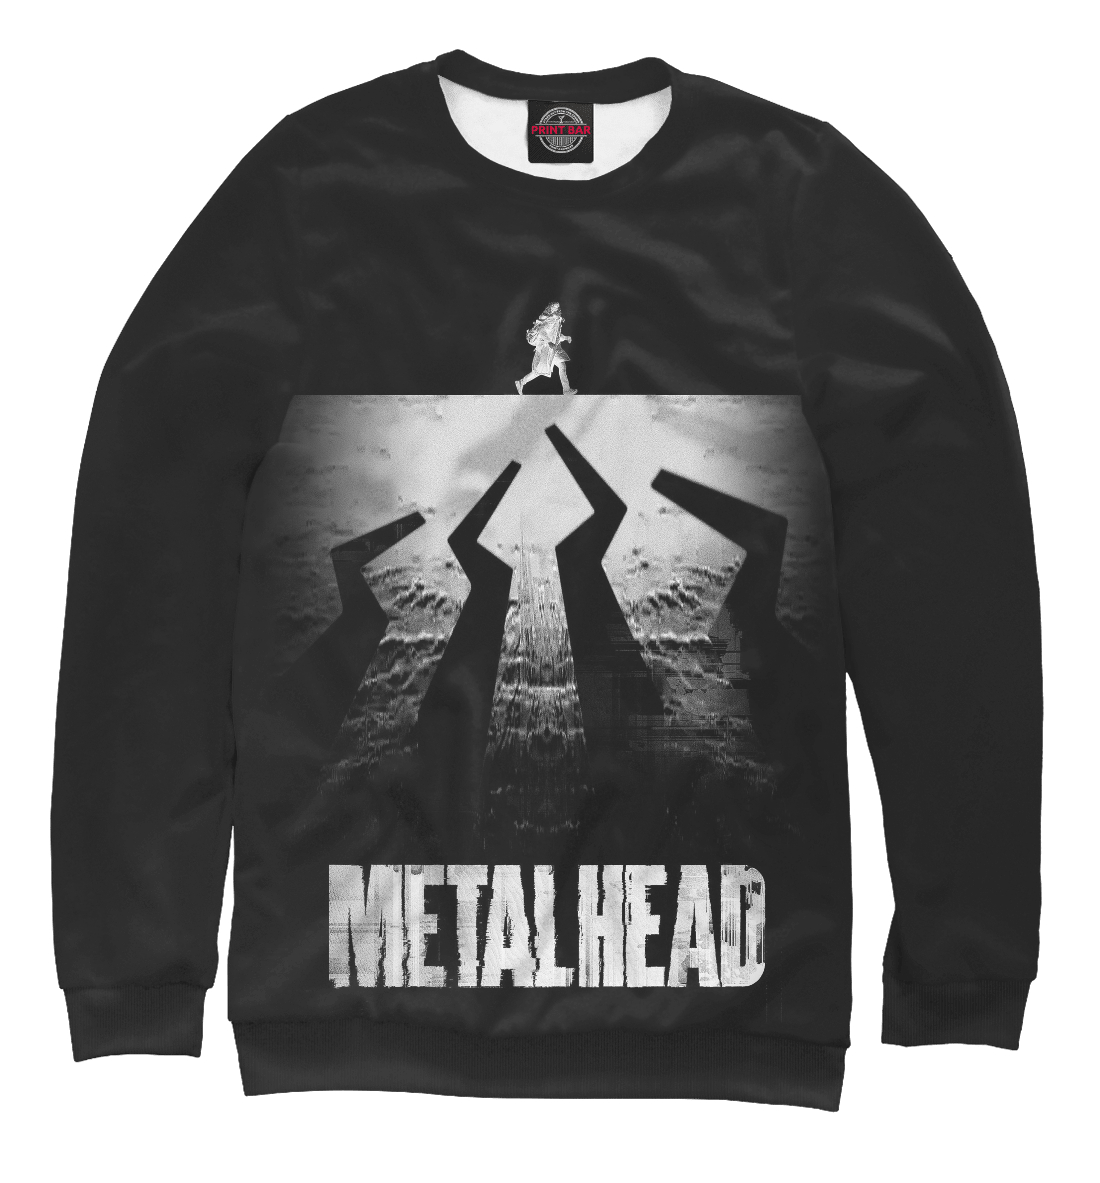 Купить Black Mirror: Metalhead, Printbar, Свитшоты, BLM-935602-swi-1